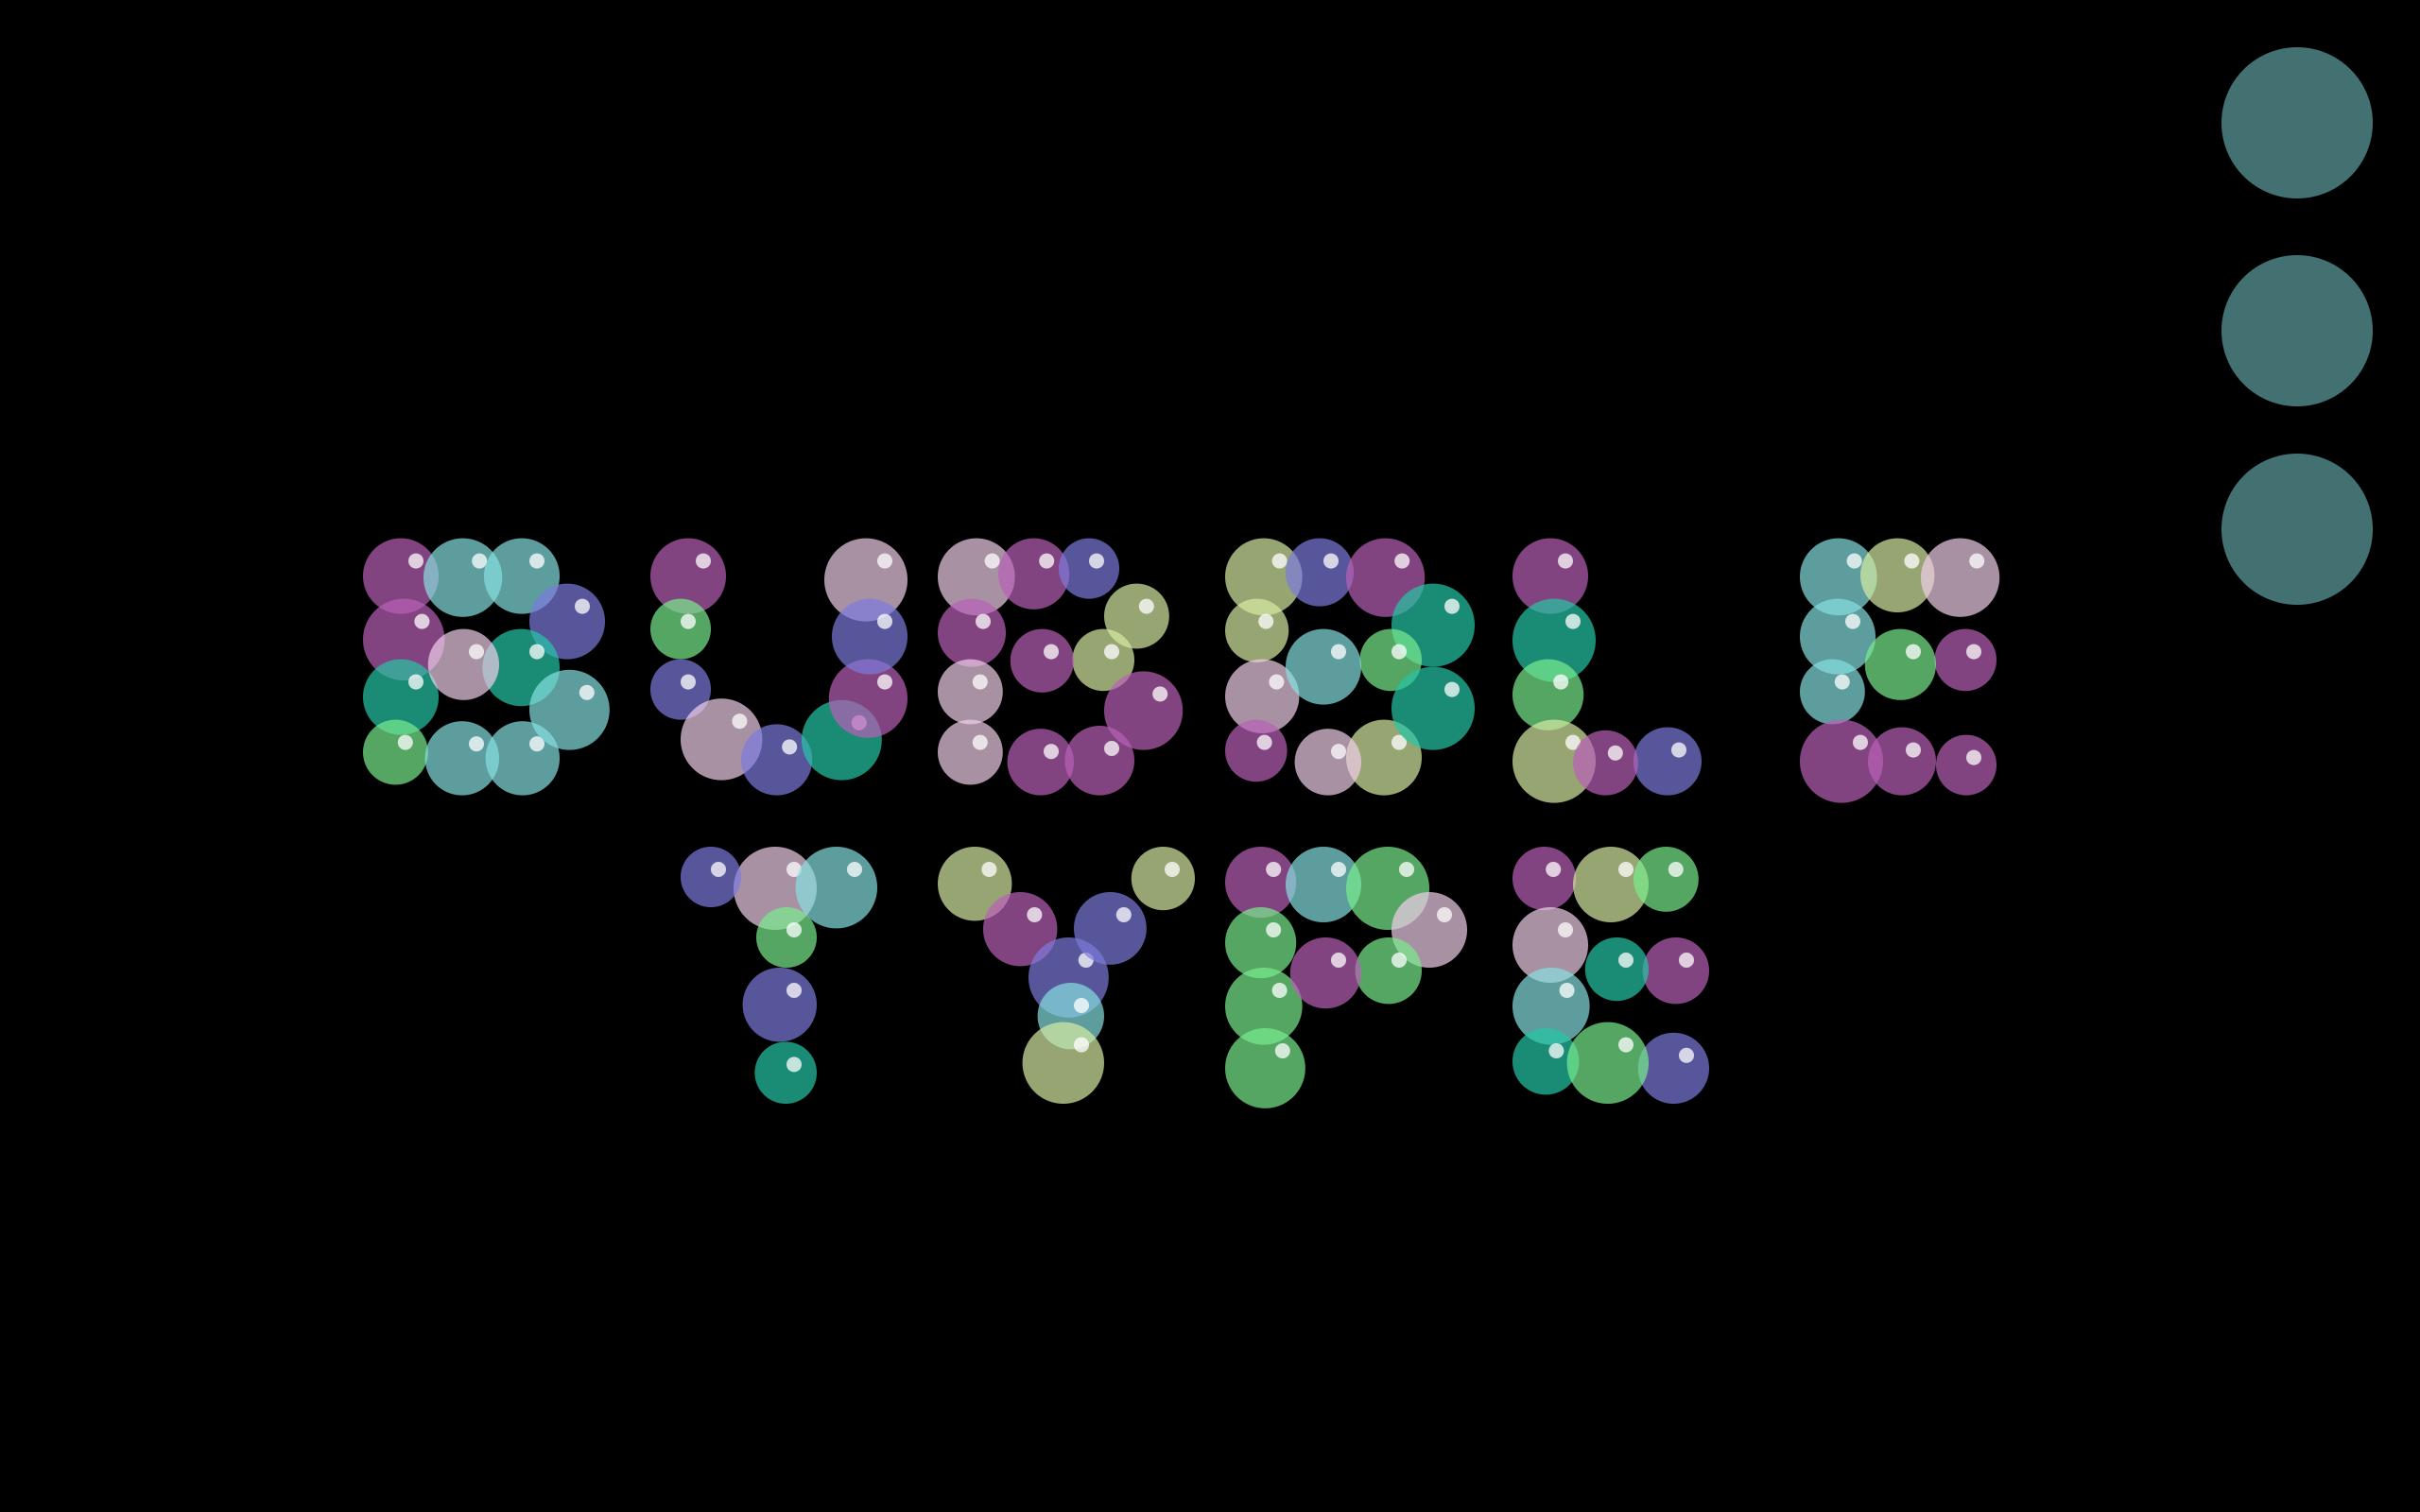 Bubble Type on all black background